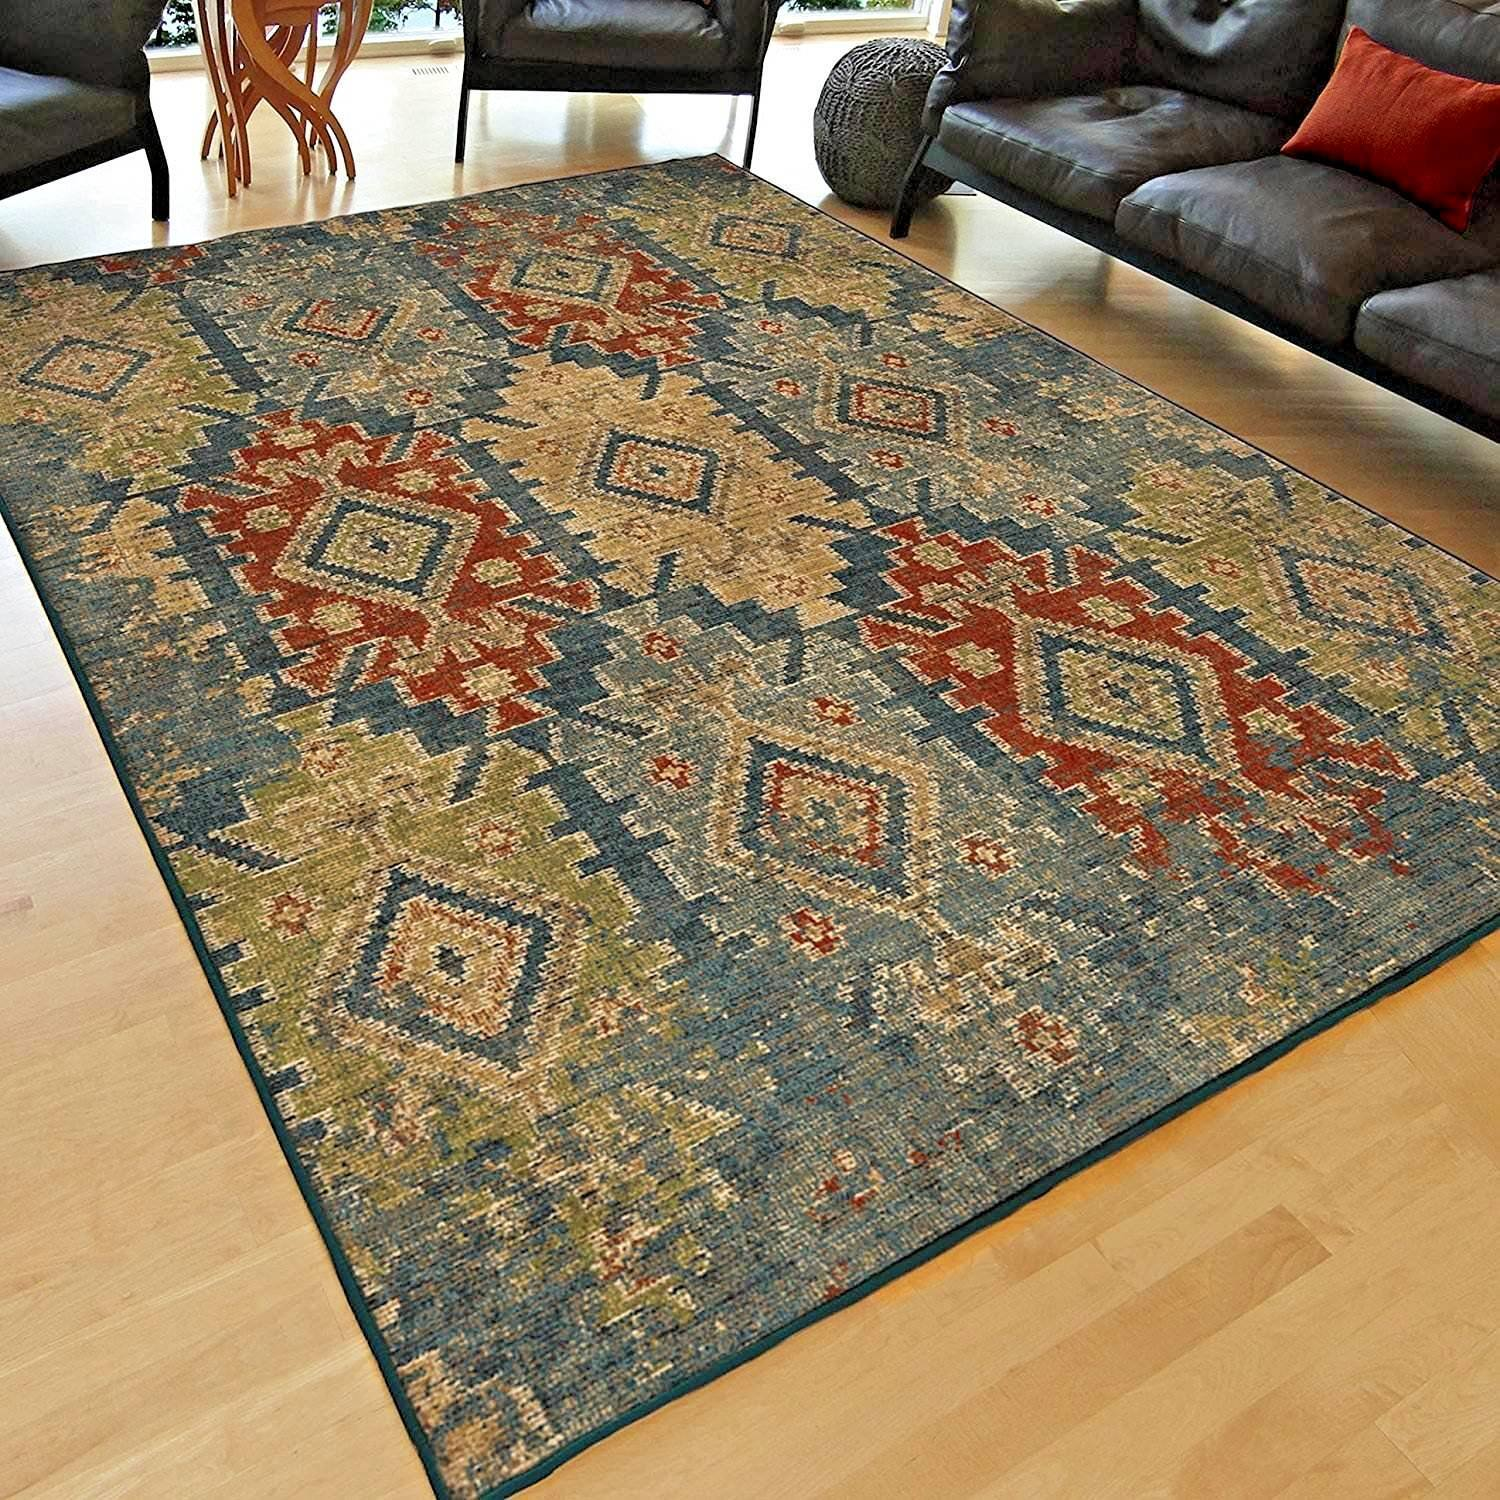 Details About Rugs Area Rugs Carpet 8x10 Area Rug Floor Big Modern Large Living Room Blue Rugs